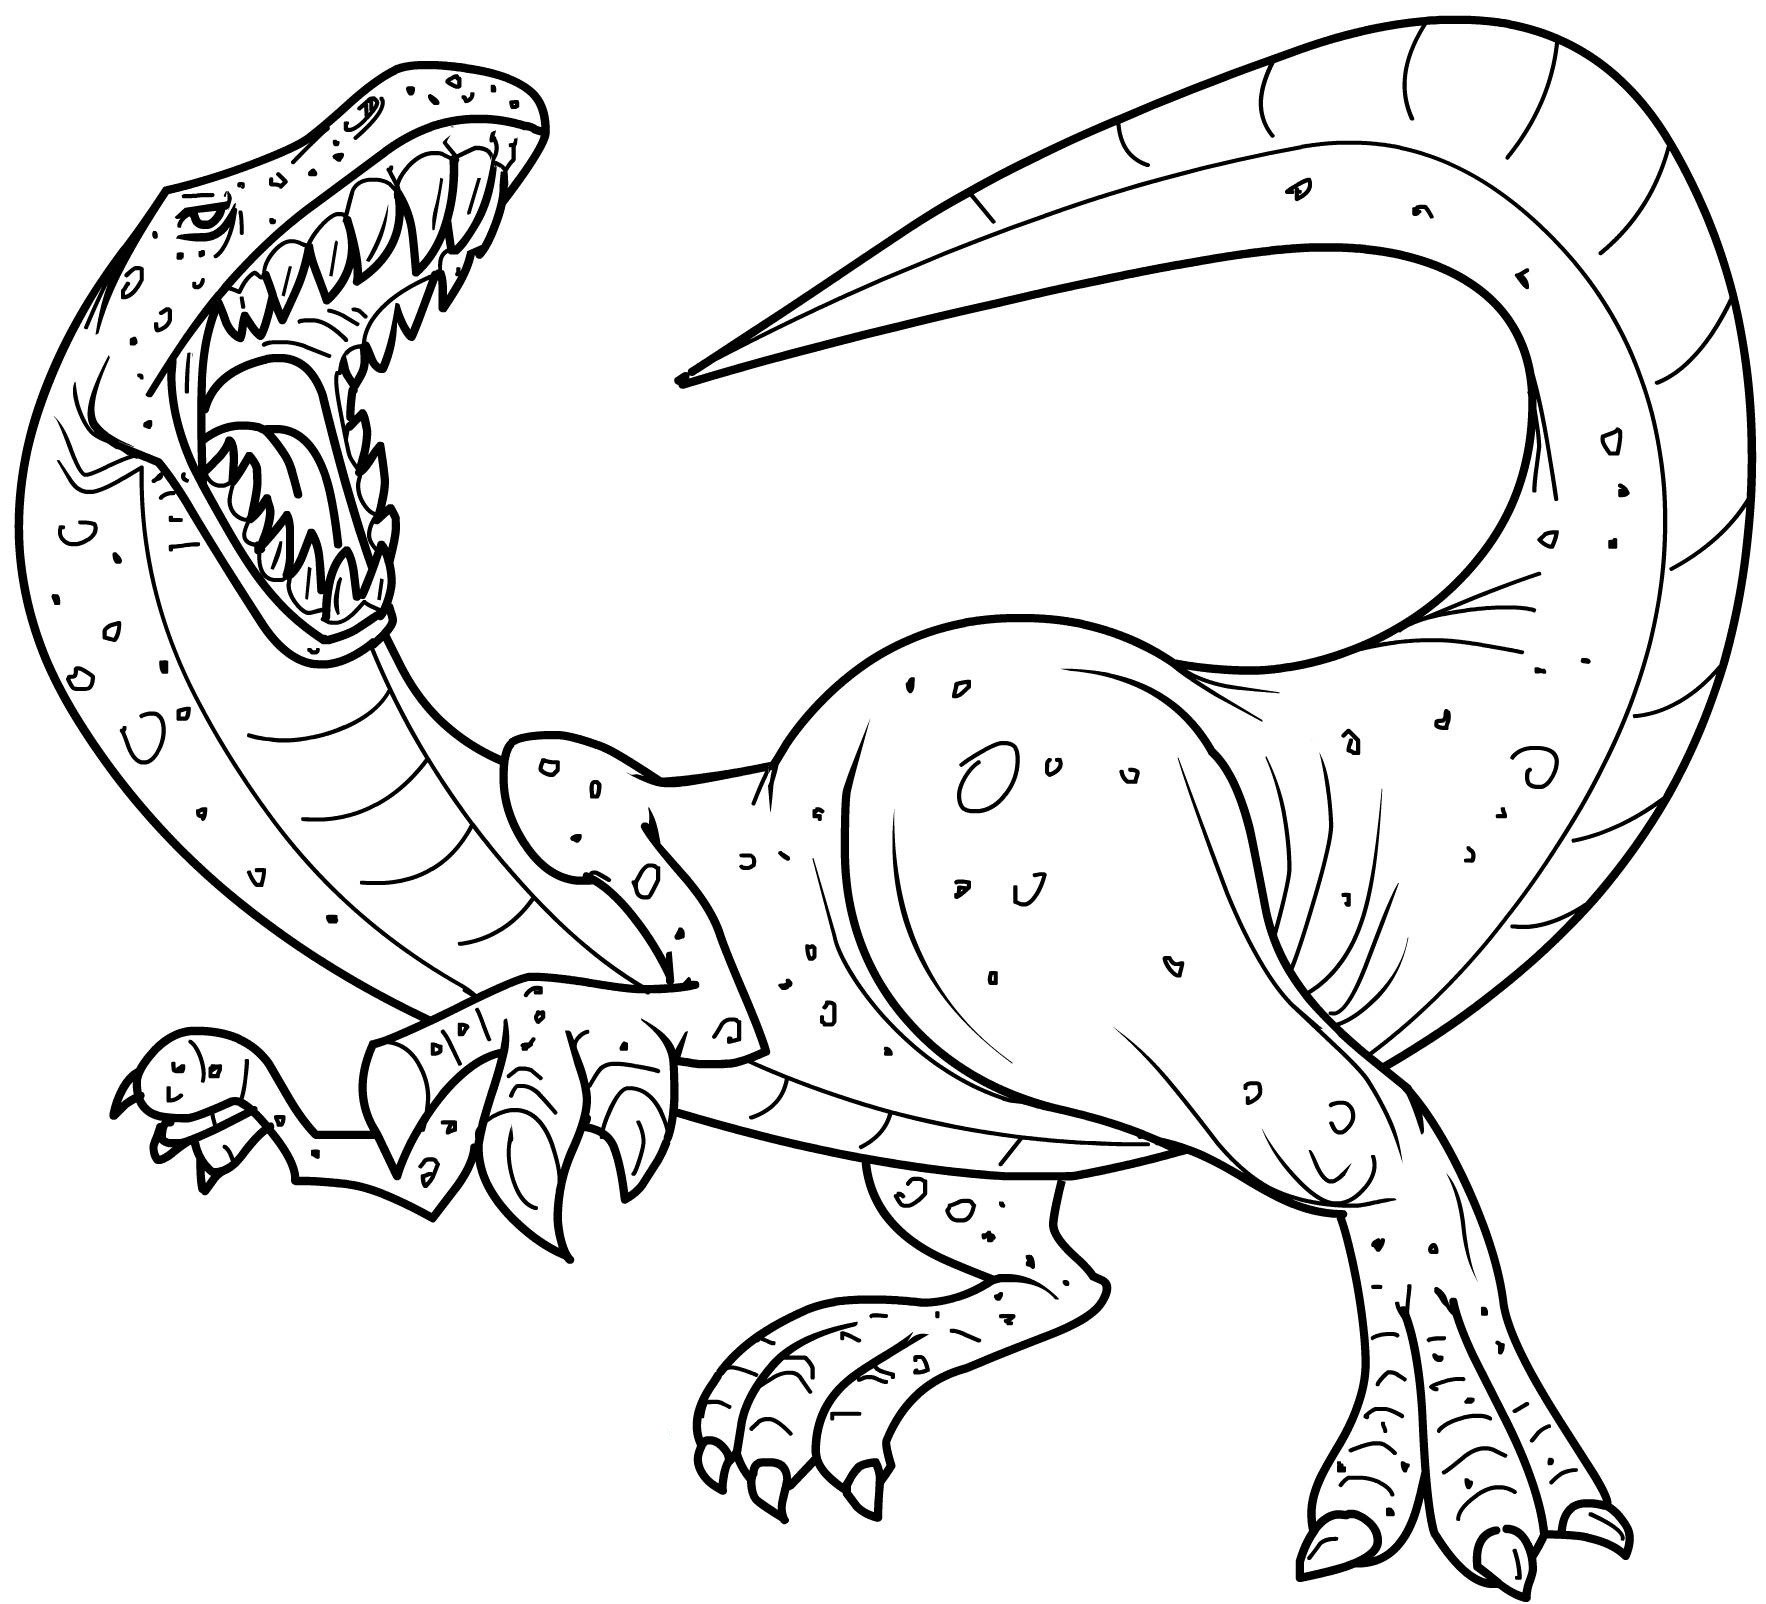 free dinosaur pictures dinosaur coloring pages to download and print for free free dinosaur pictures